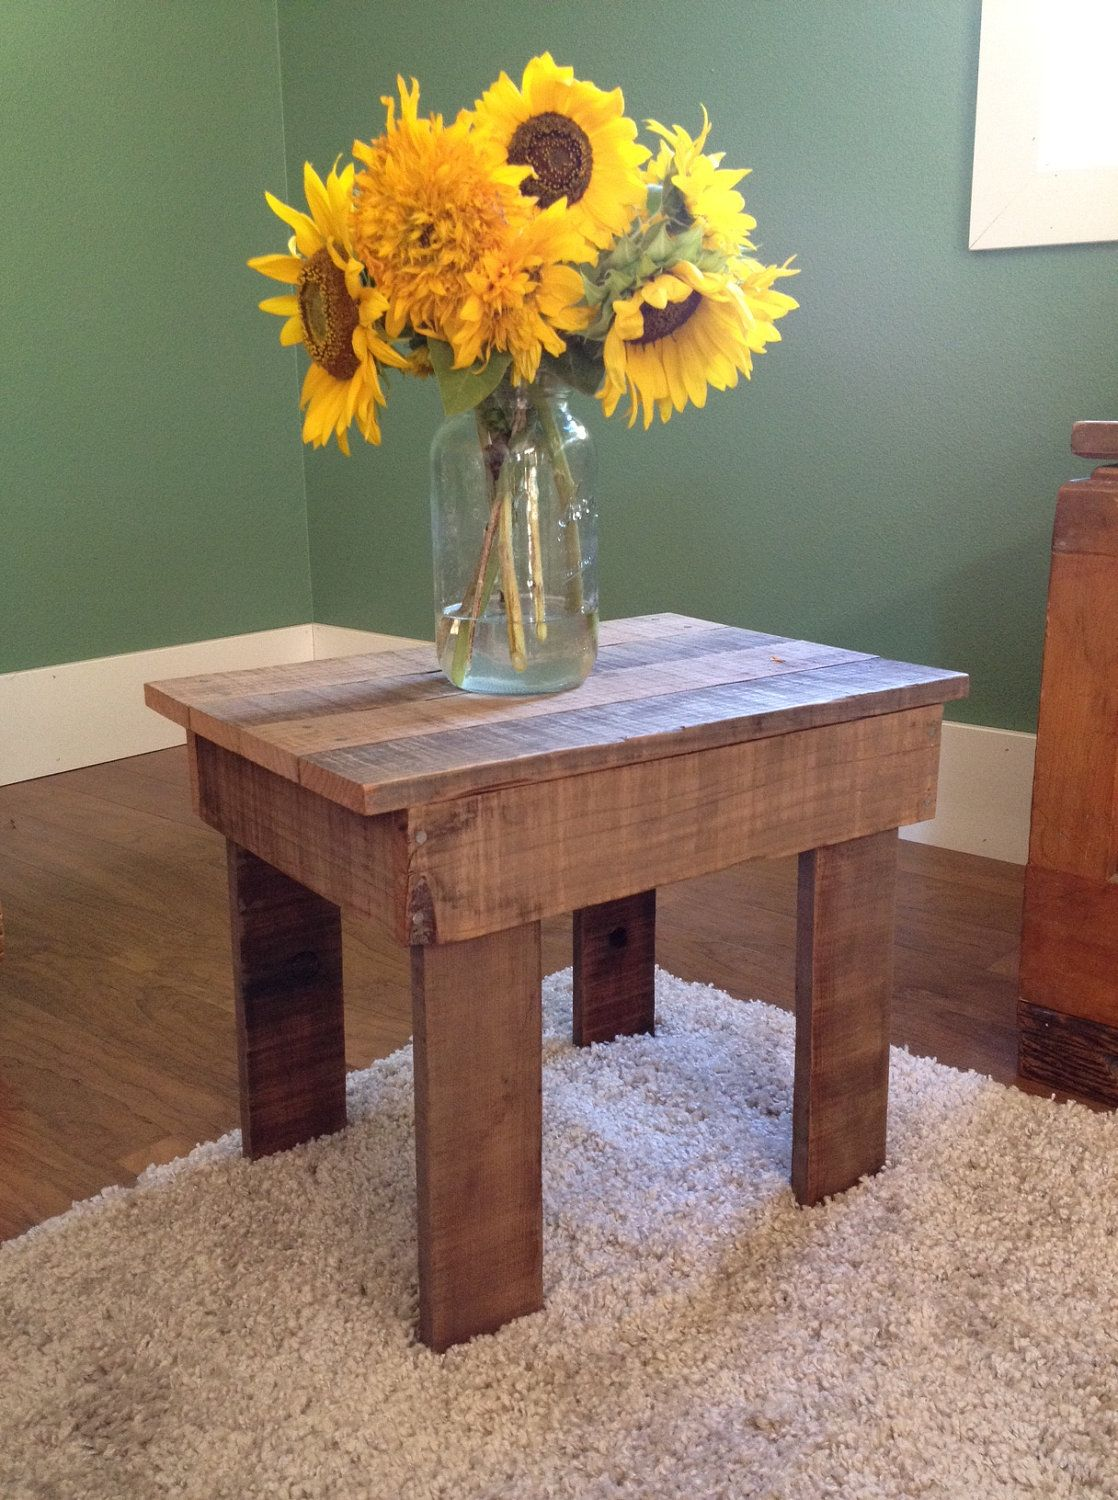 Rustic Reclaimed Redwood Side Table By BouquetAcres On Etsy If - Redwood side table